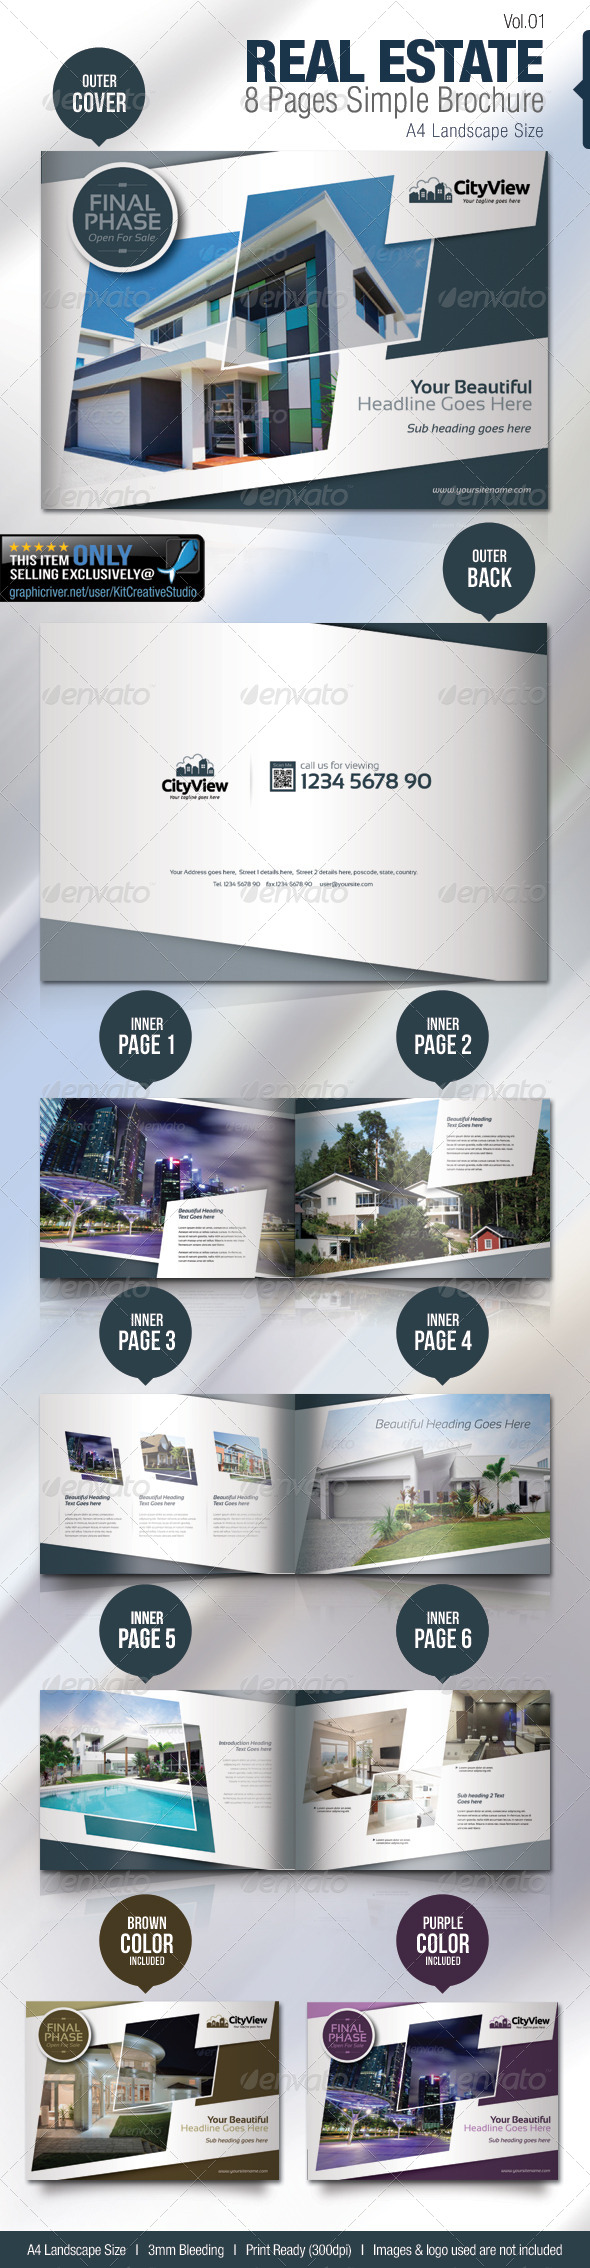 GraphicRiver Real Estate 8 Pages Simple Brochure 5150842